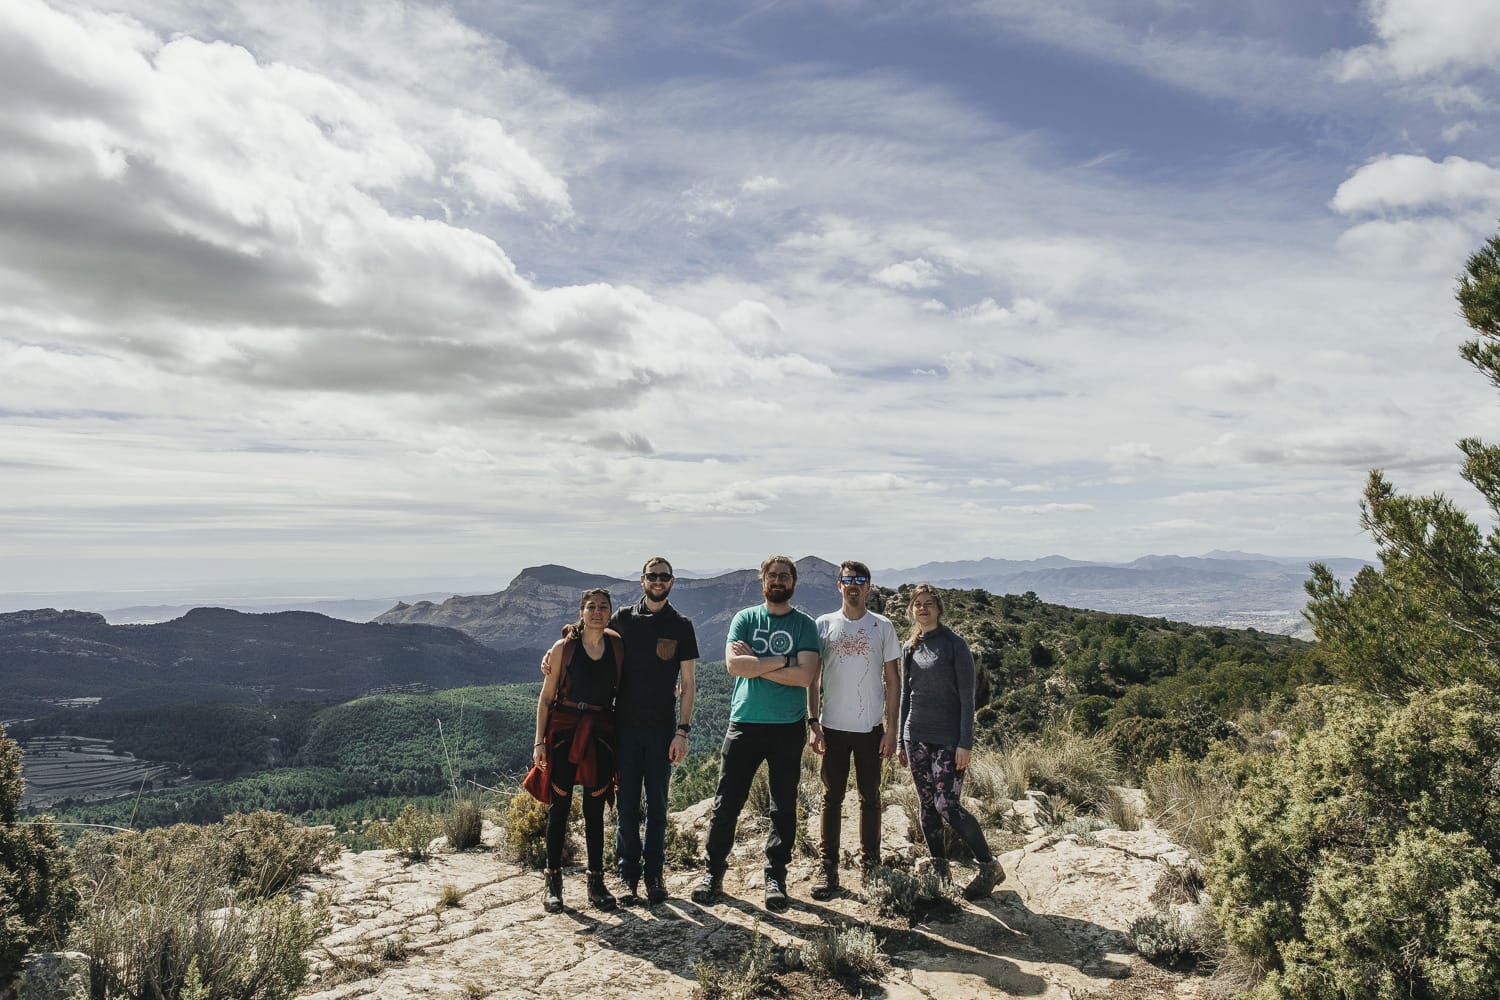 group photo of hikers in Spain